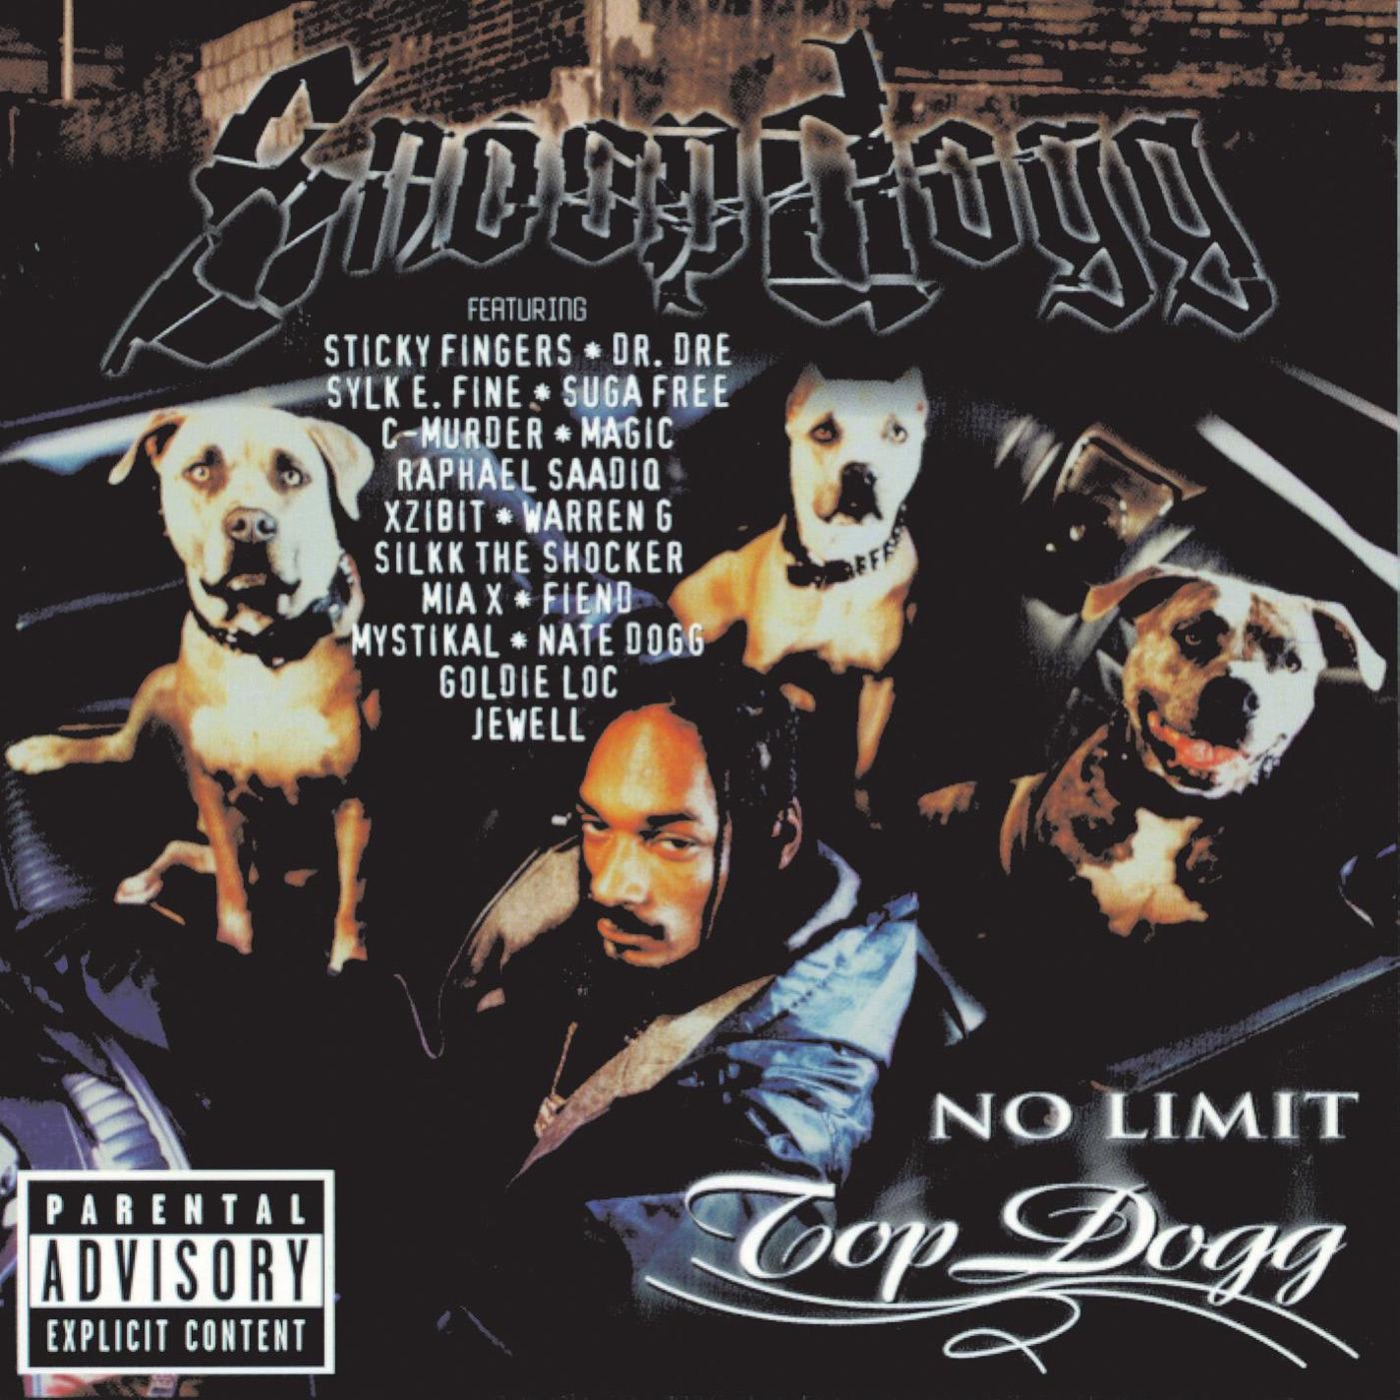 Snoop Dogg - No Limit Top Dogg Cover